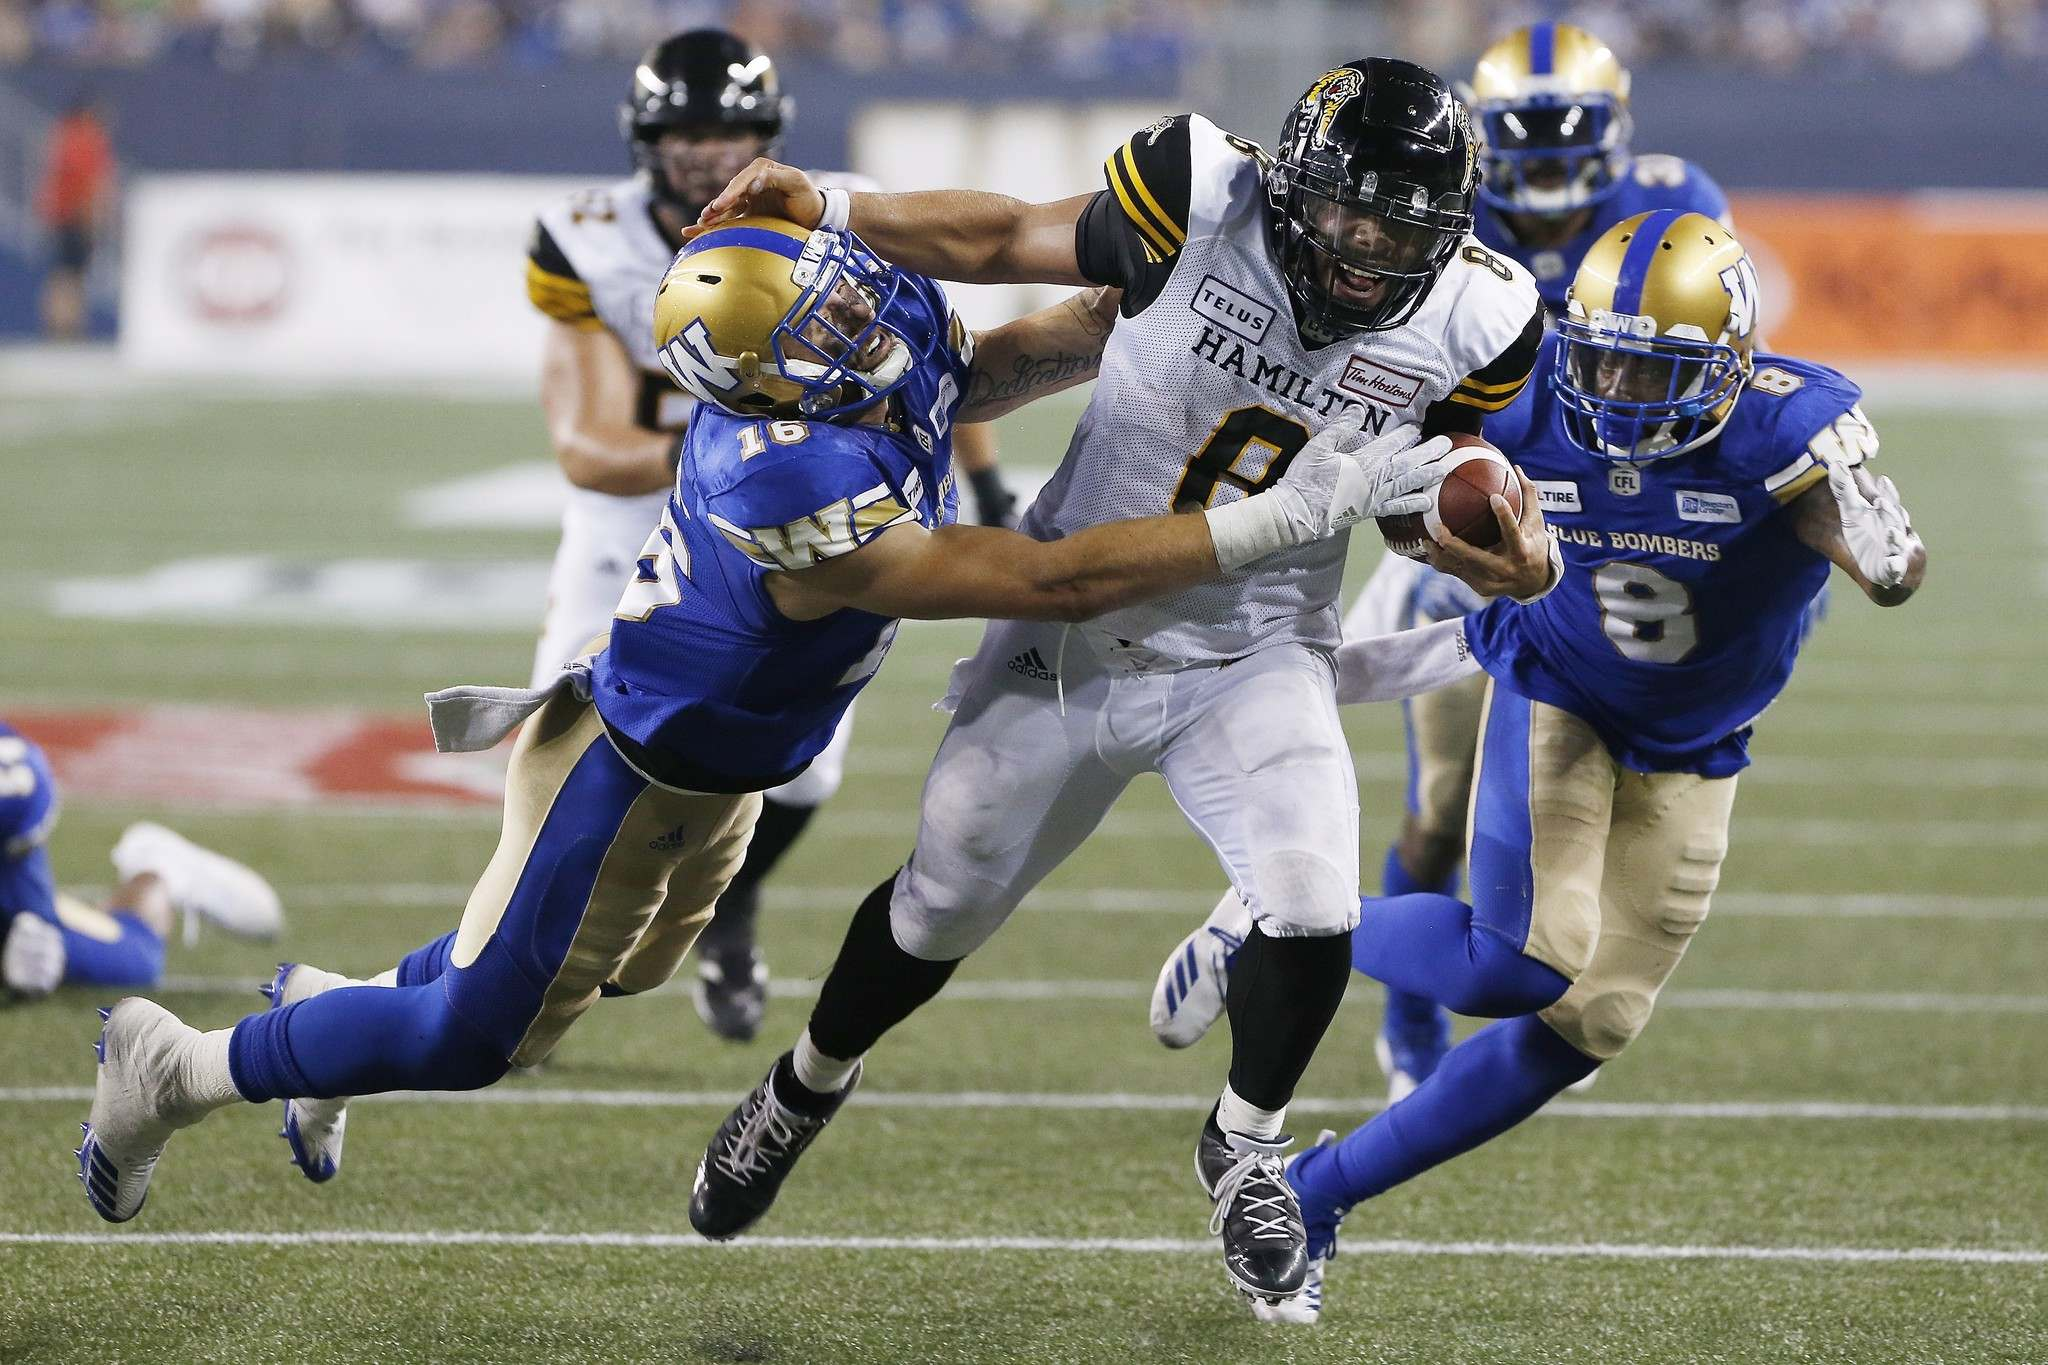 Winnipeg Blue Bombers' Taylor Loffler (16) and Chris Randle (8) chase down Hamilton Tiger-Cats' quarterback Jeremiah Masoli (8) as he drives for the touchdown line during the second half of CFL action in Winnipeg on Friday. (John Woods / The Canadian Press)</p>